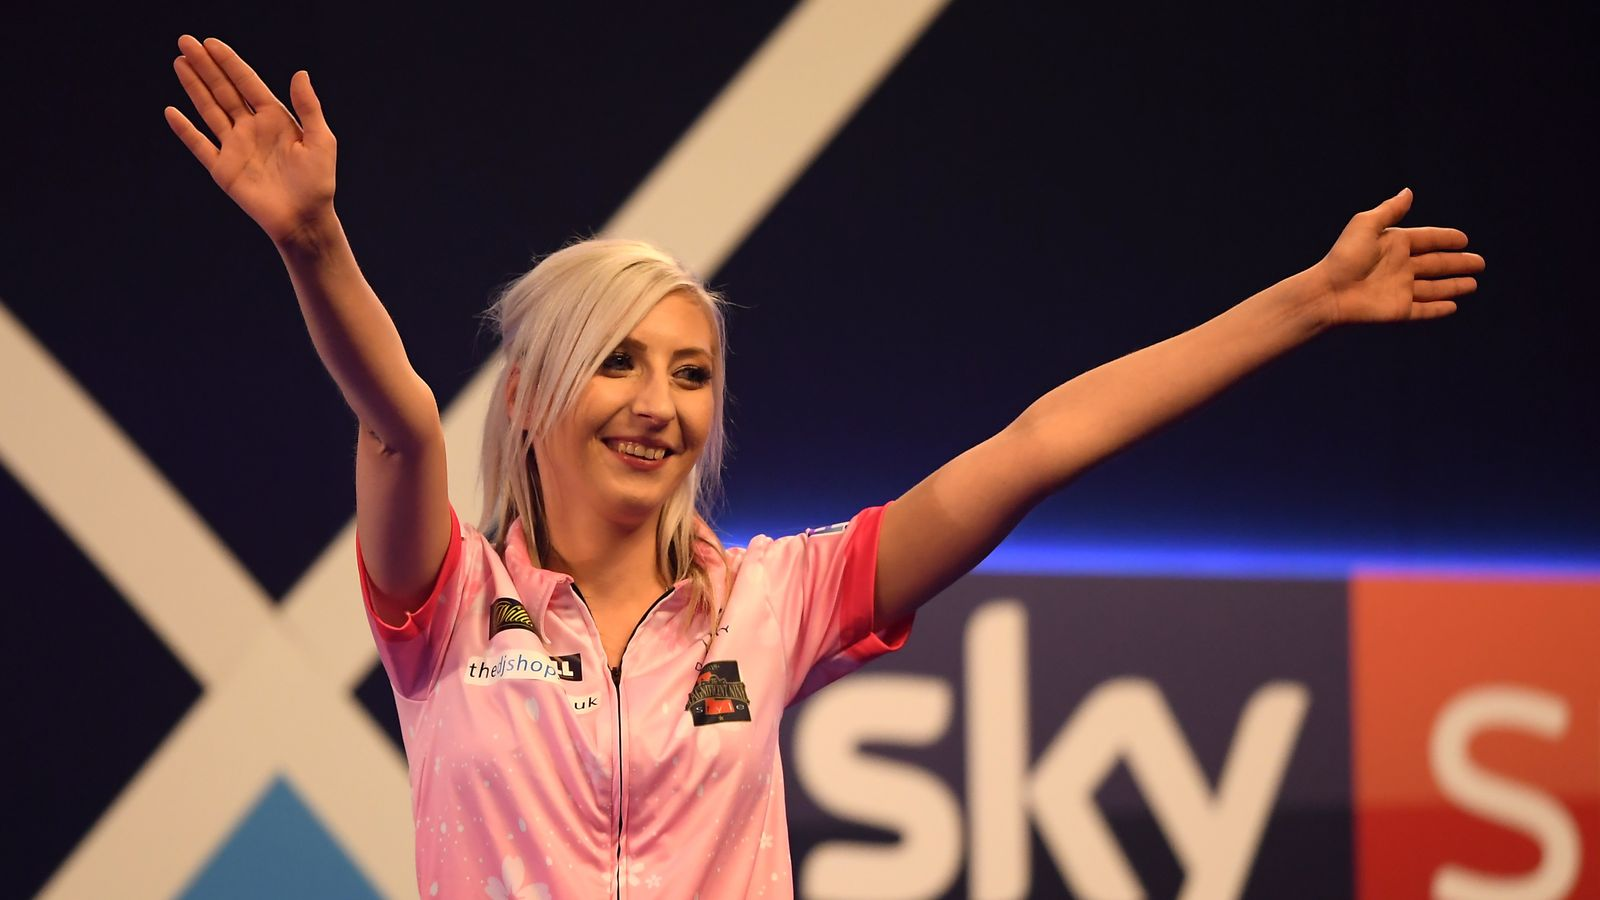 'Really buzzing': Female darts player beats another man at World Championships - EpicNews